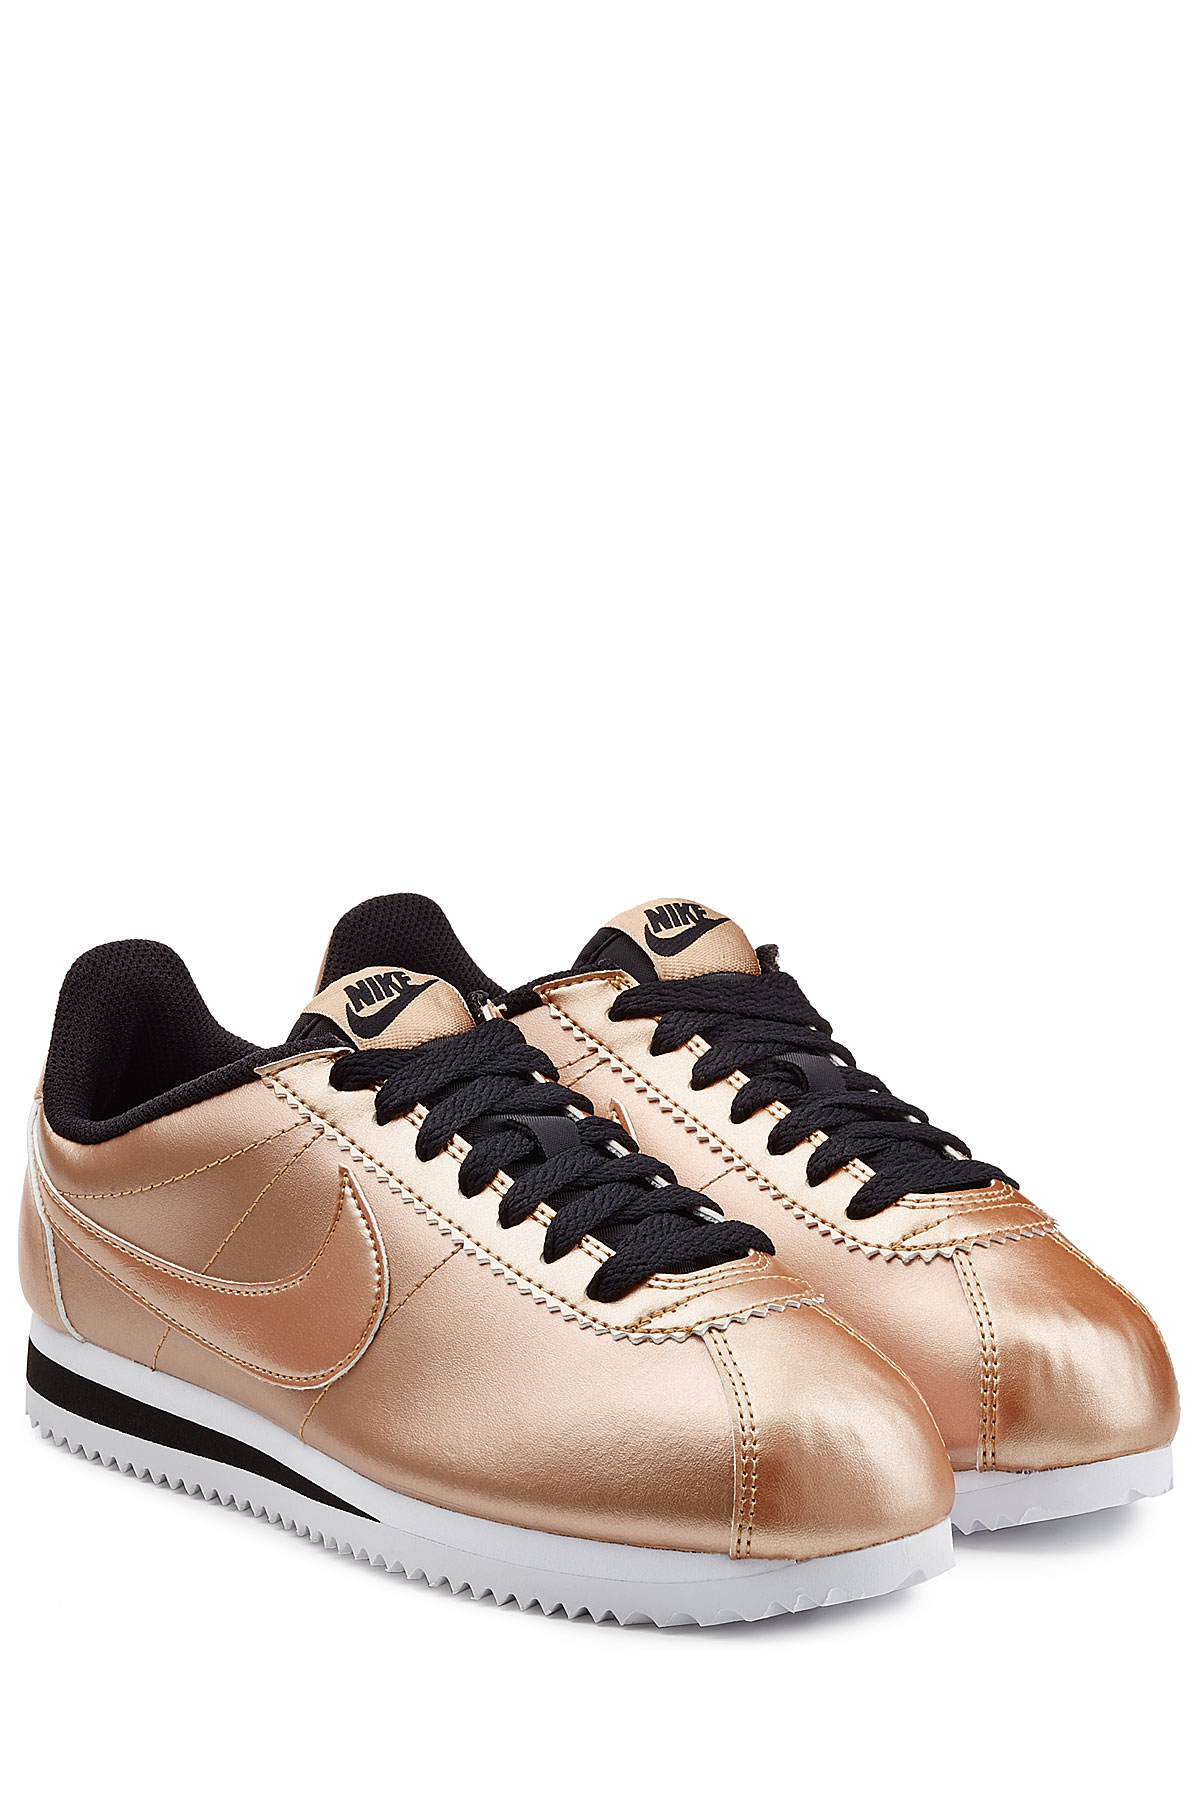 nike classic cortez metallic leather sneakers rose in. Black Bedroom Furniture Sets. Home Design Ideas